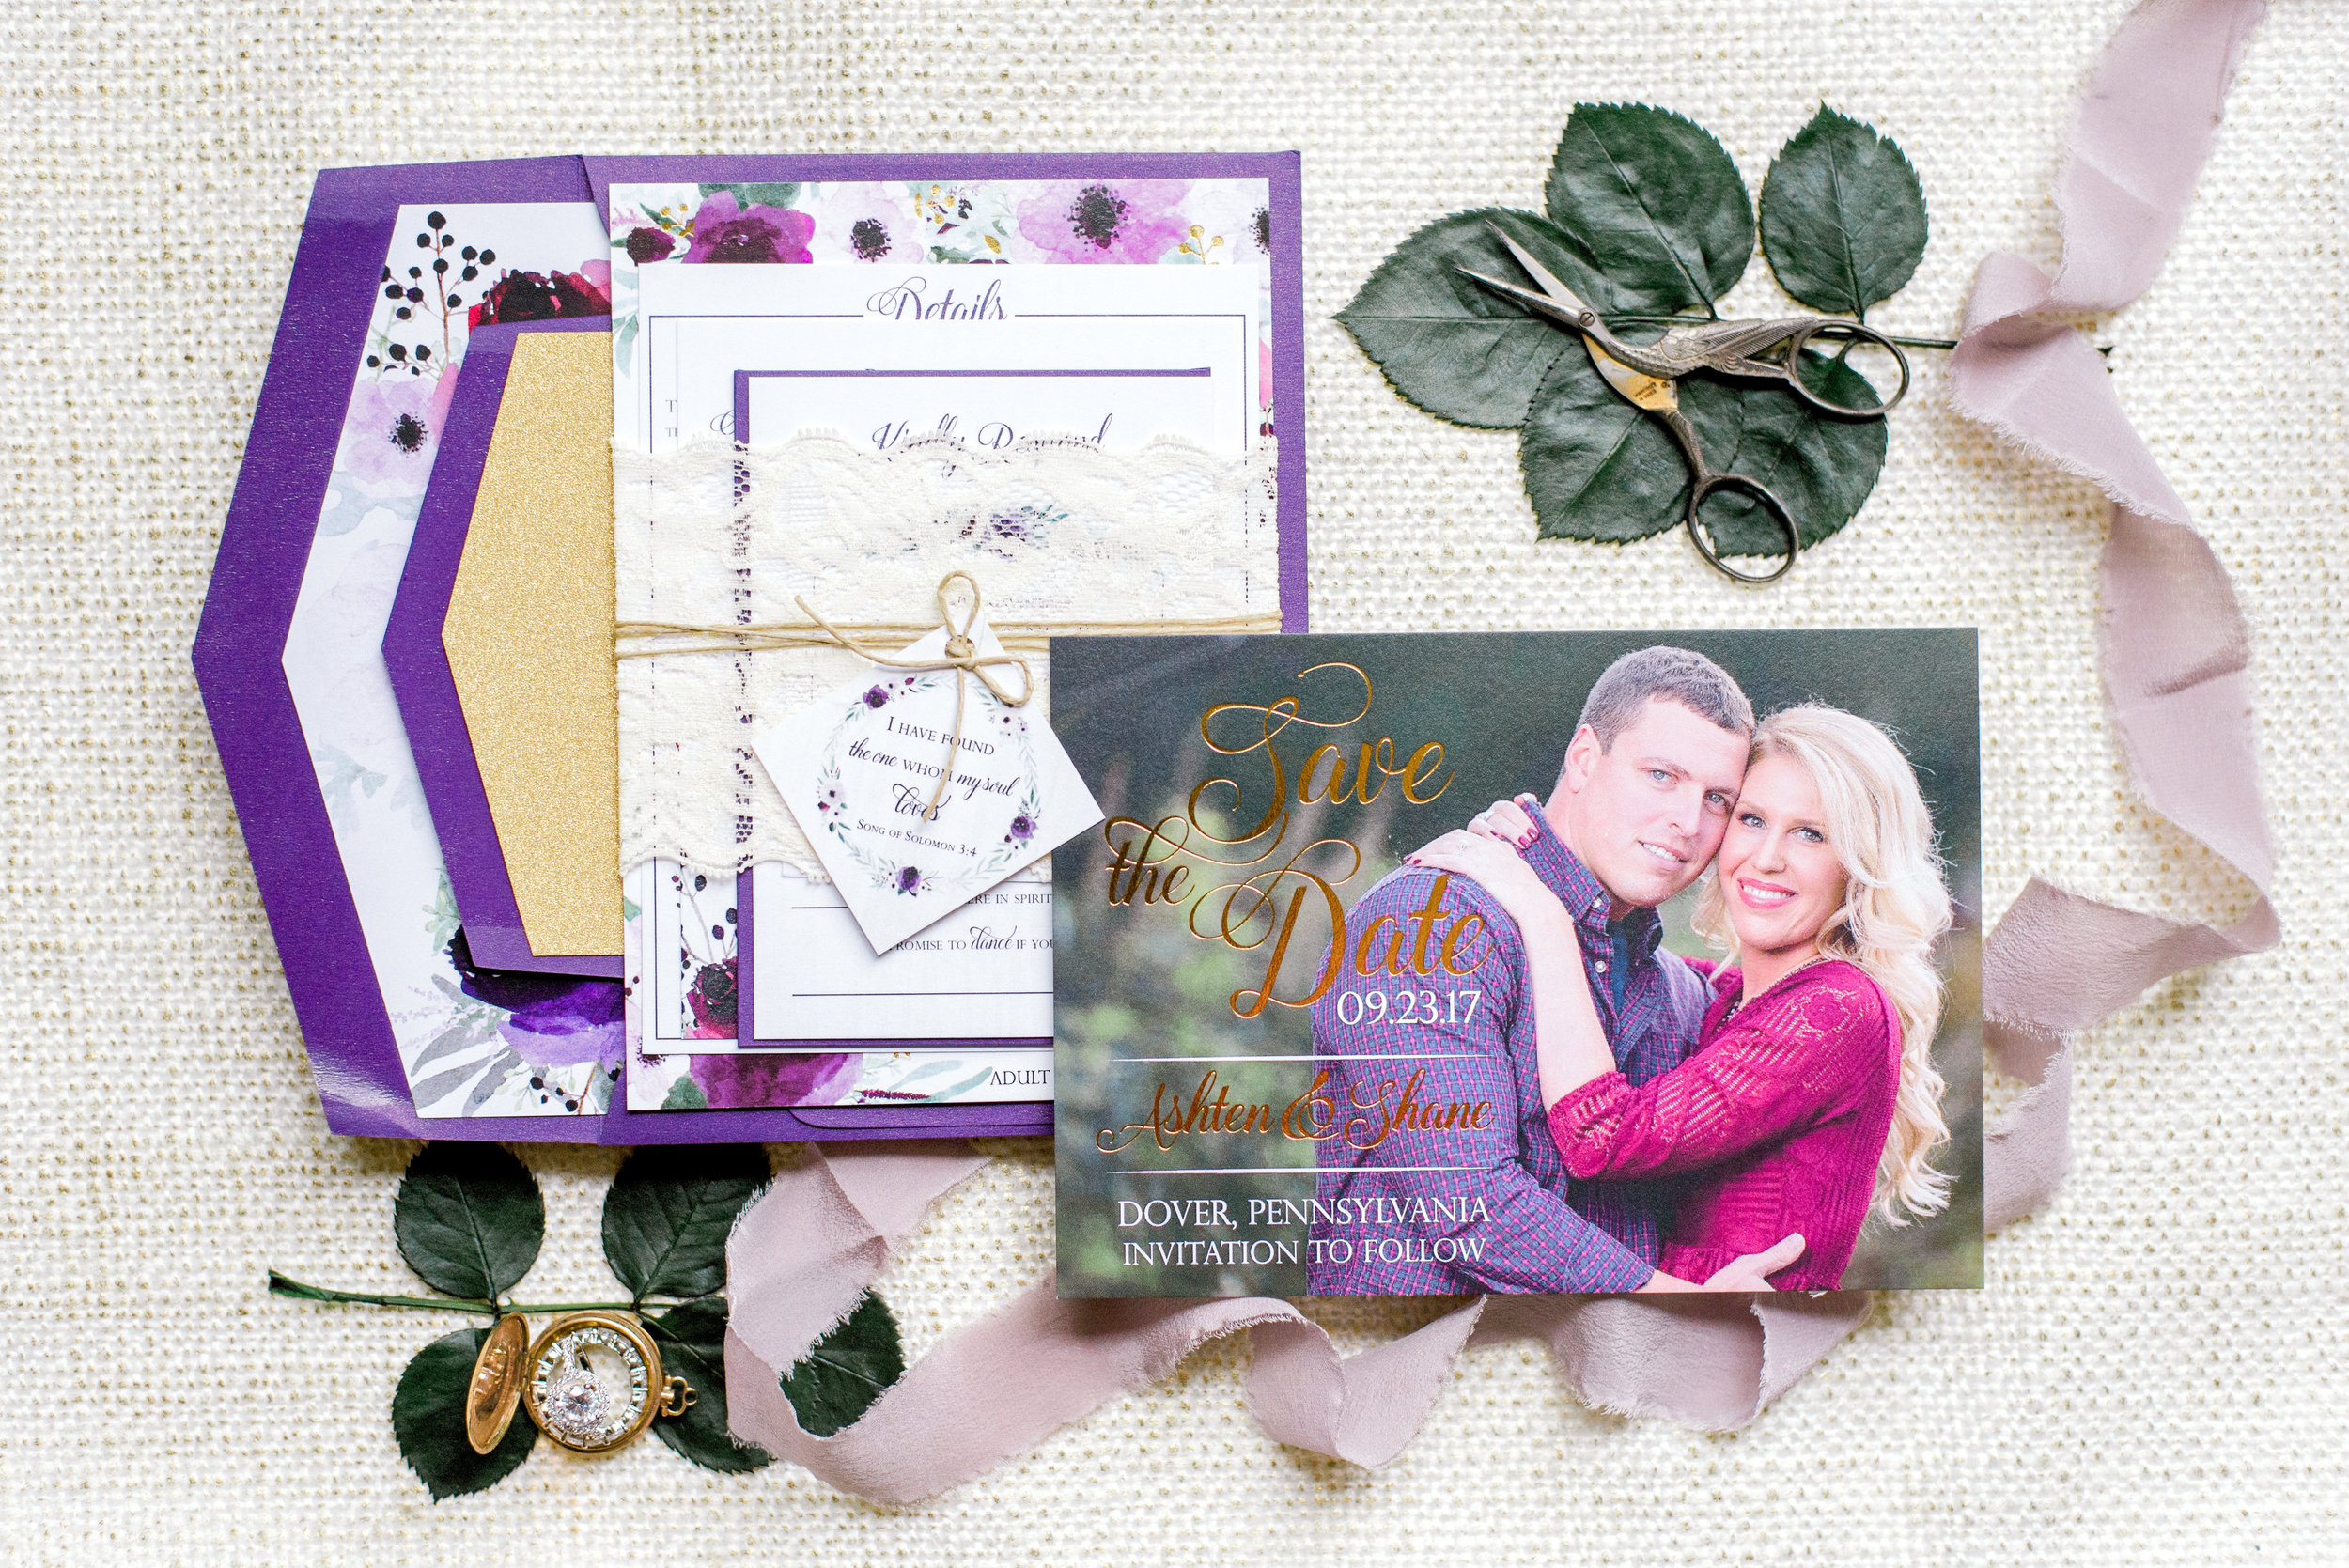 Ashtens wedding invitation suite Photography by Krista Brackin Photography